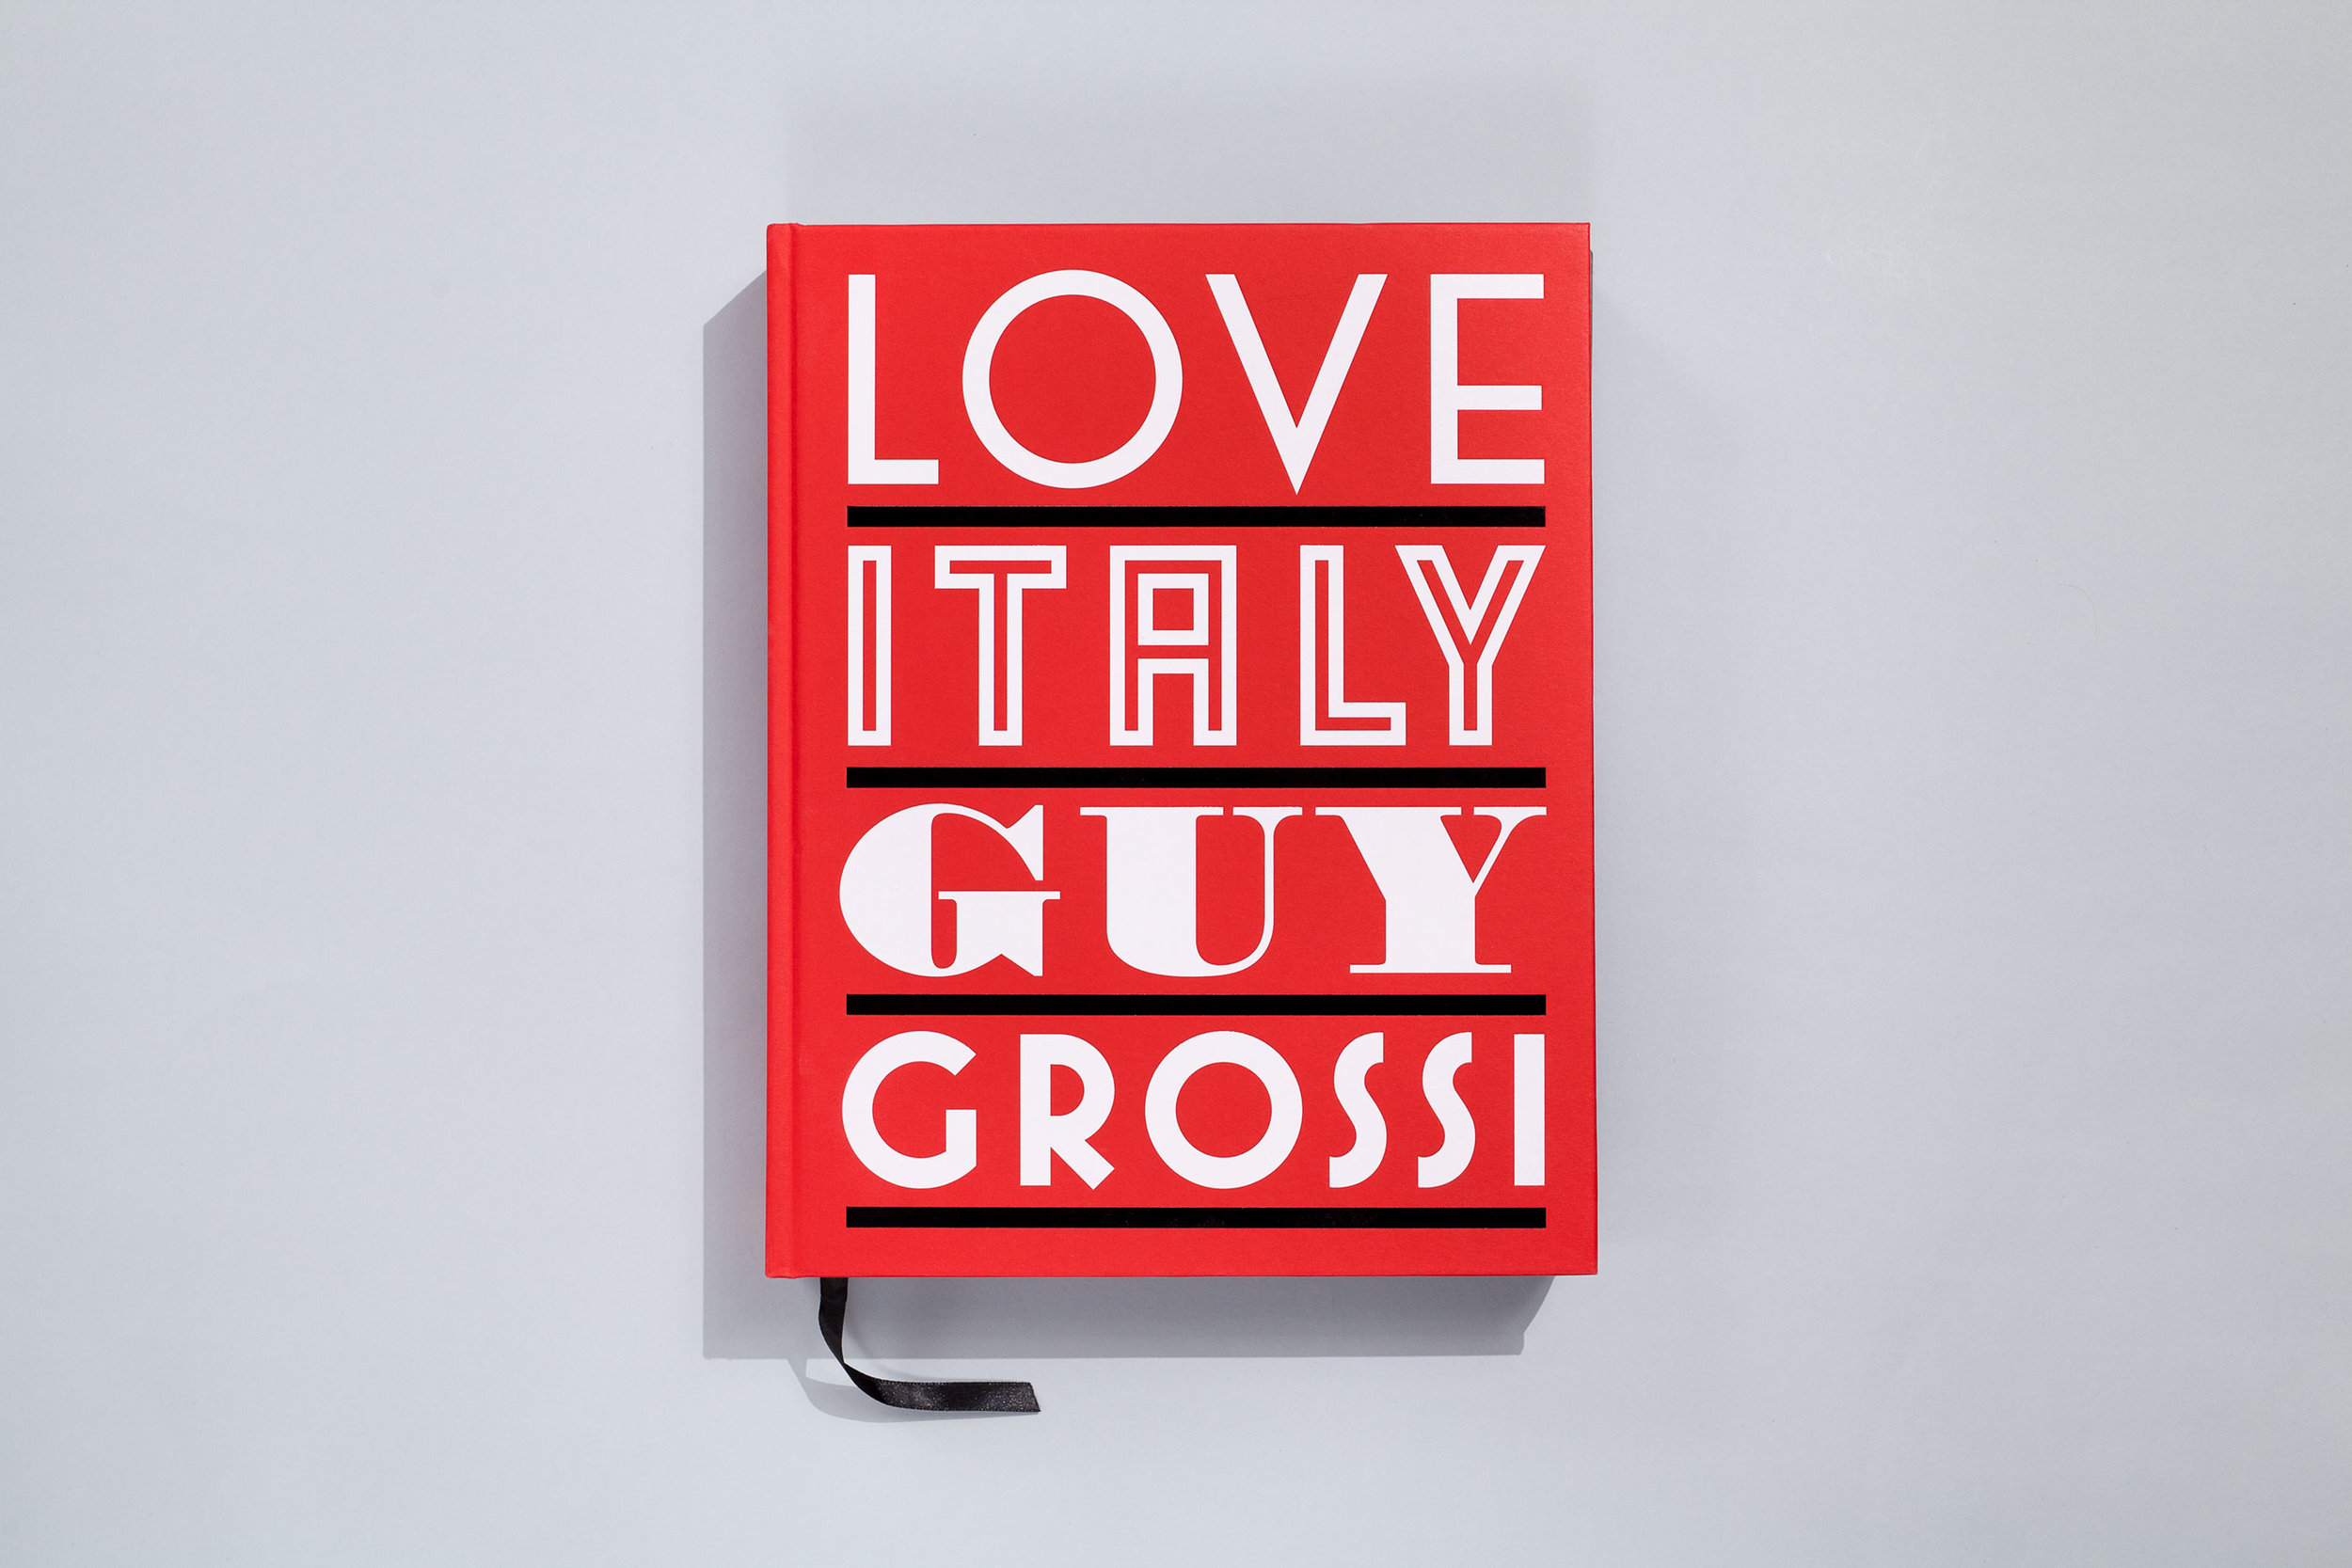 Title – Love Italy Author – Guy Grossi Designer/Illustrator – Daniel New Photographer – Mark Chew Stylist – Indianna Foord Publisher – Lantern, Penguin Books  2014 Australian Book Design Awards + Book of the Year + Best Designed Cookbook 2014 Gourmand World Cookbook Awards + Winner Cookbook of the Year (Australia) + Short-listed Best in the world Cookbook of the Year